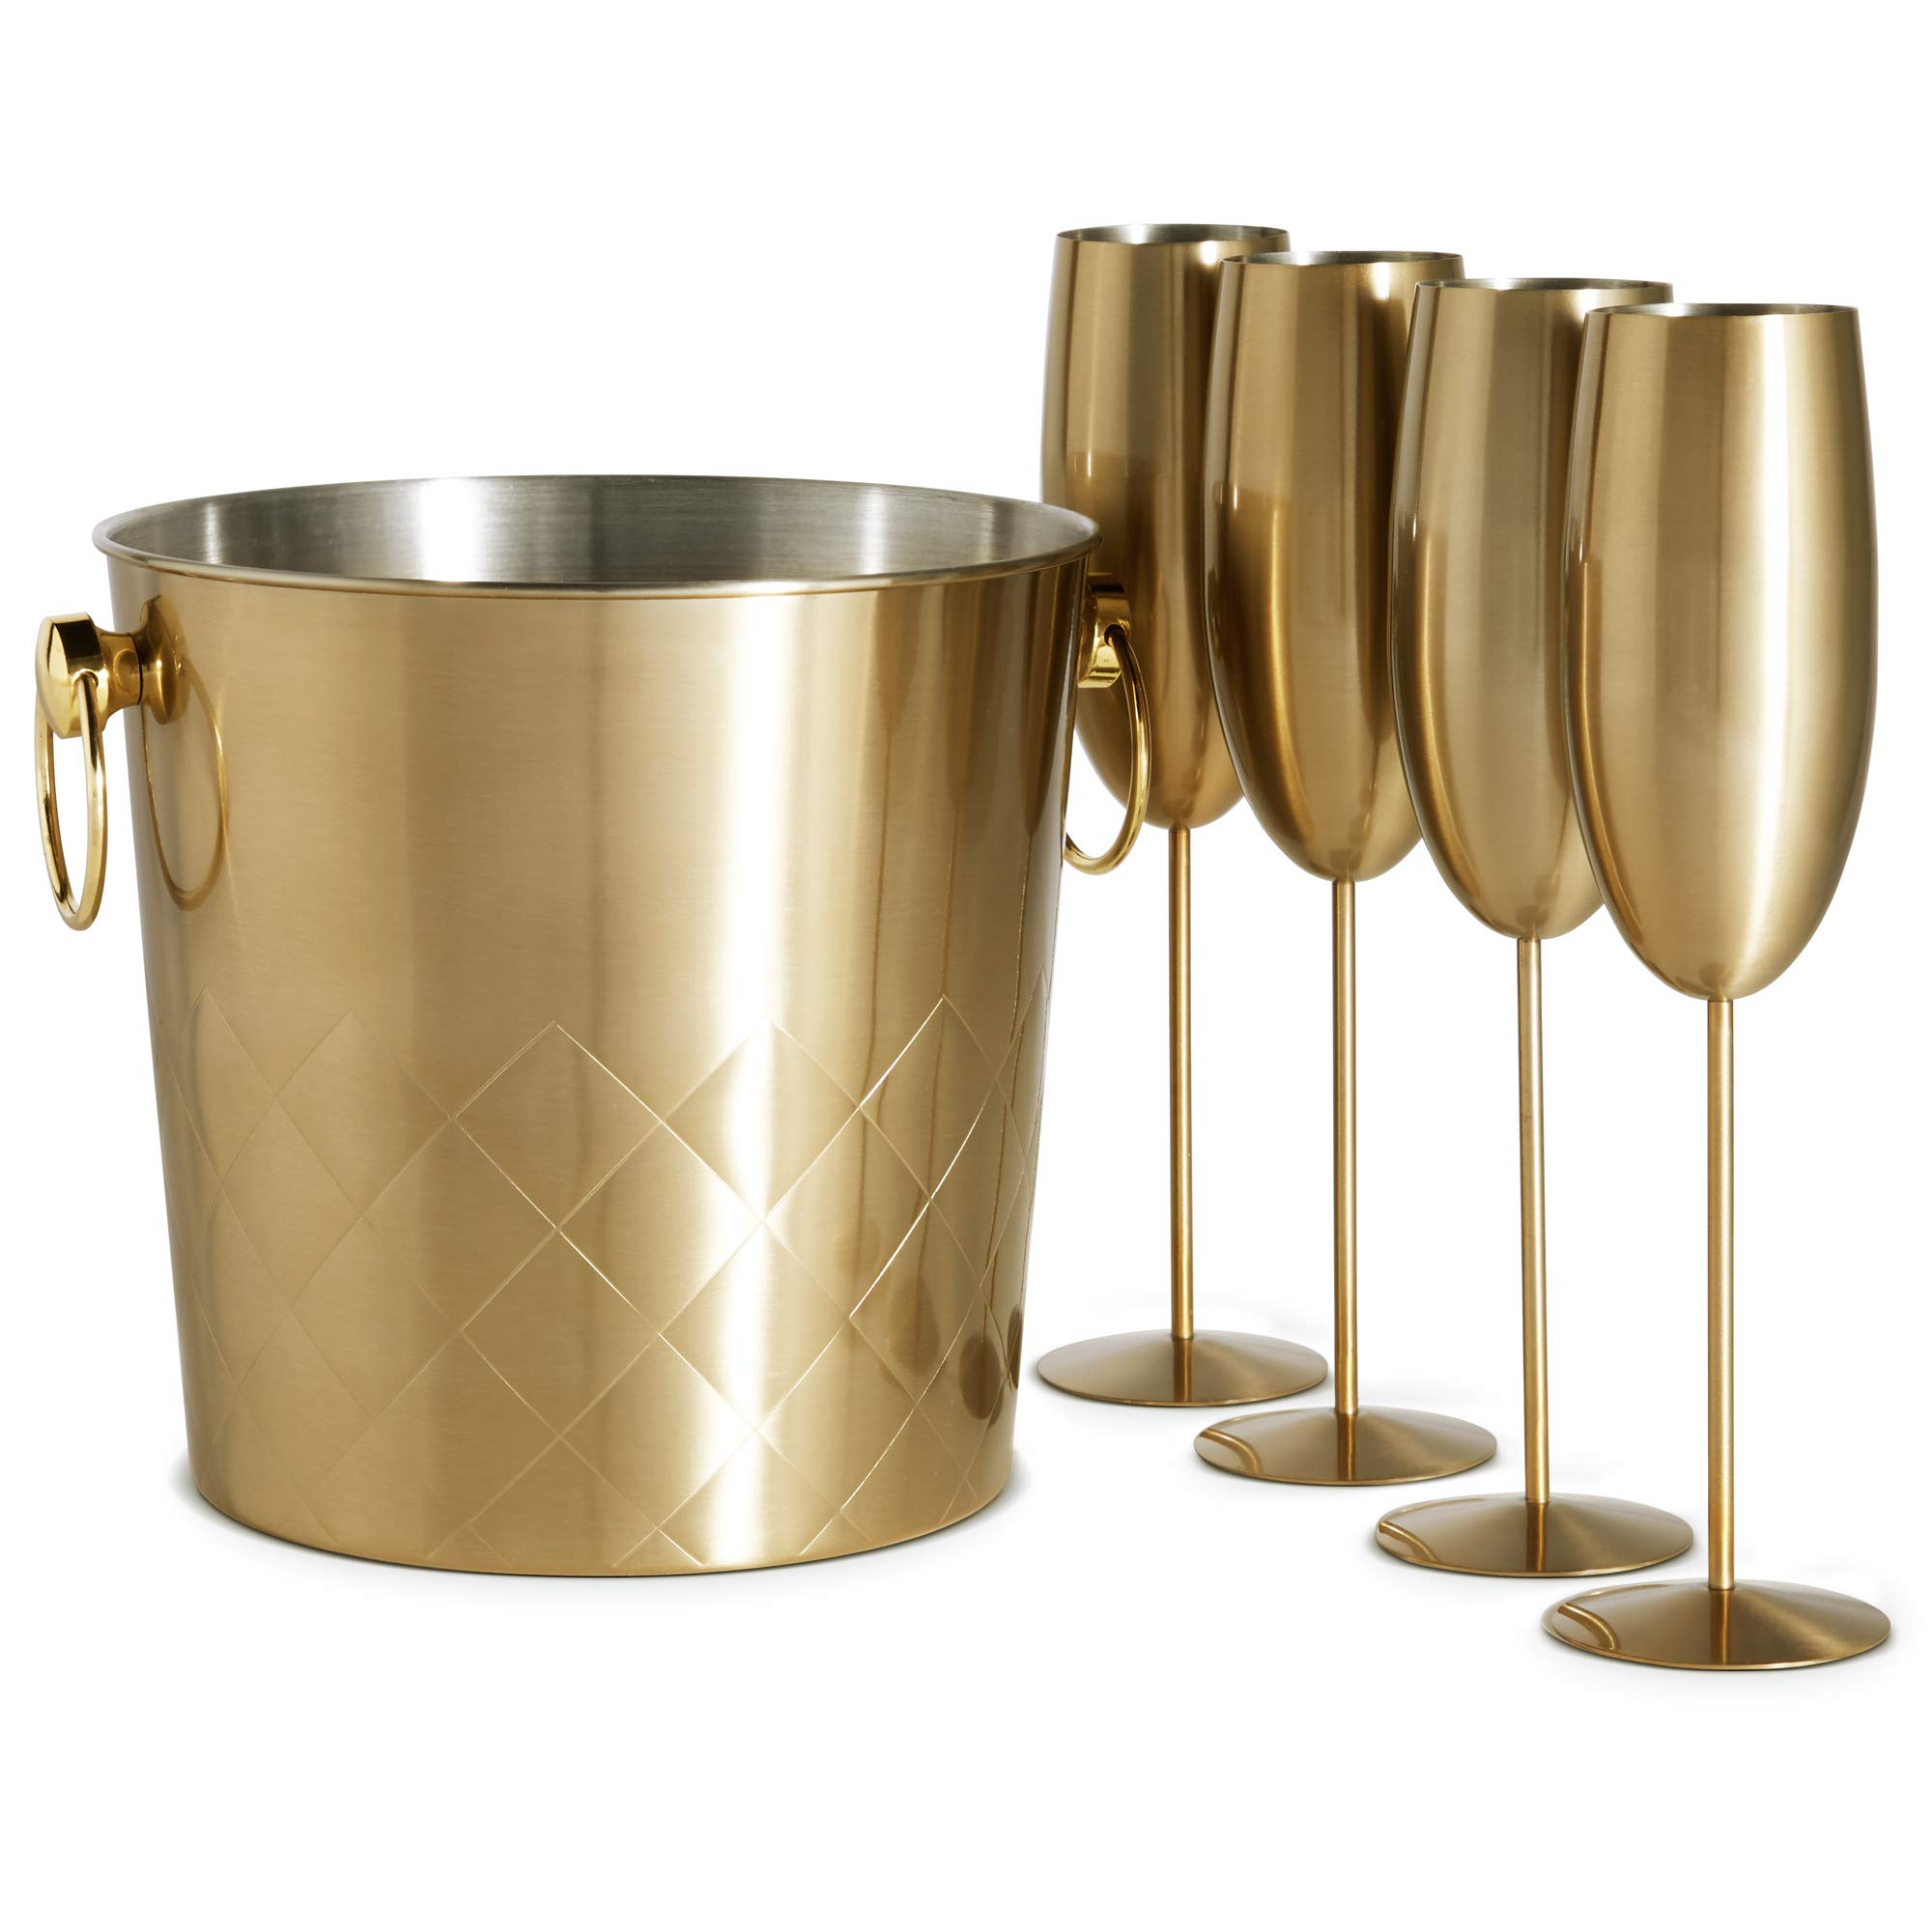 VonShef Brushed Gold Champagne Bucket with 4 Gold Glasses, 175oz, Etched Stainless Steel Ice Bucket with Carry Handles